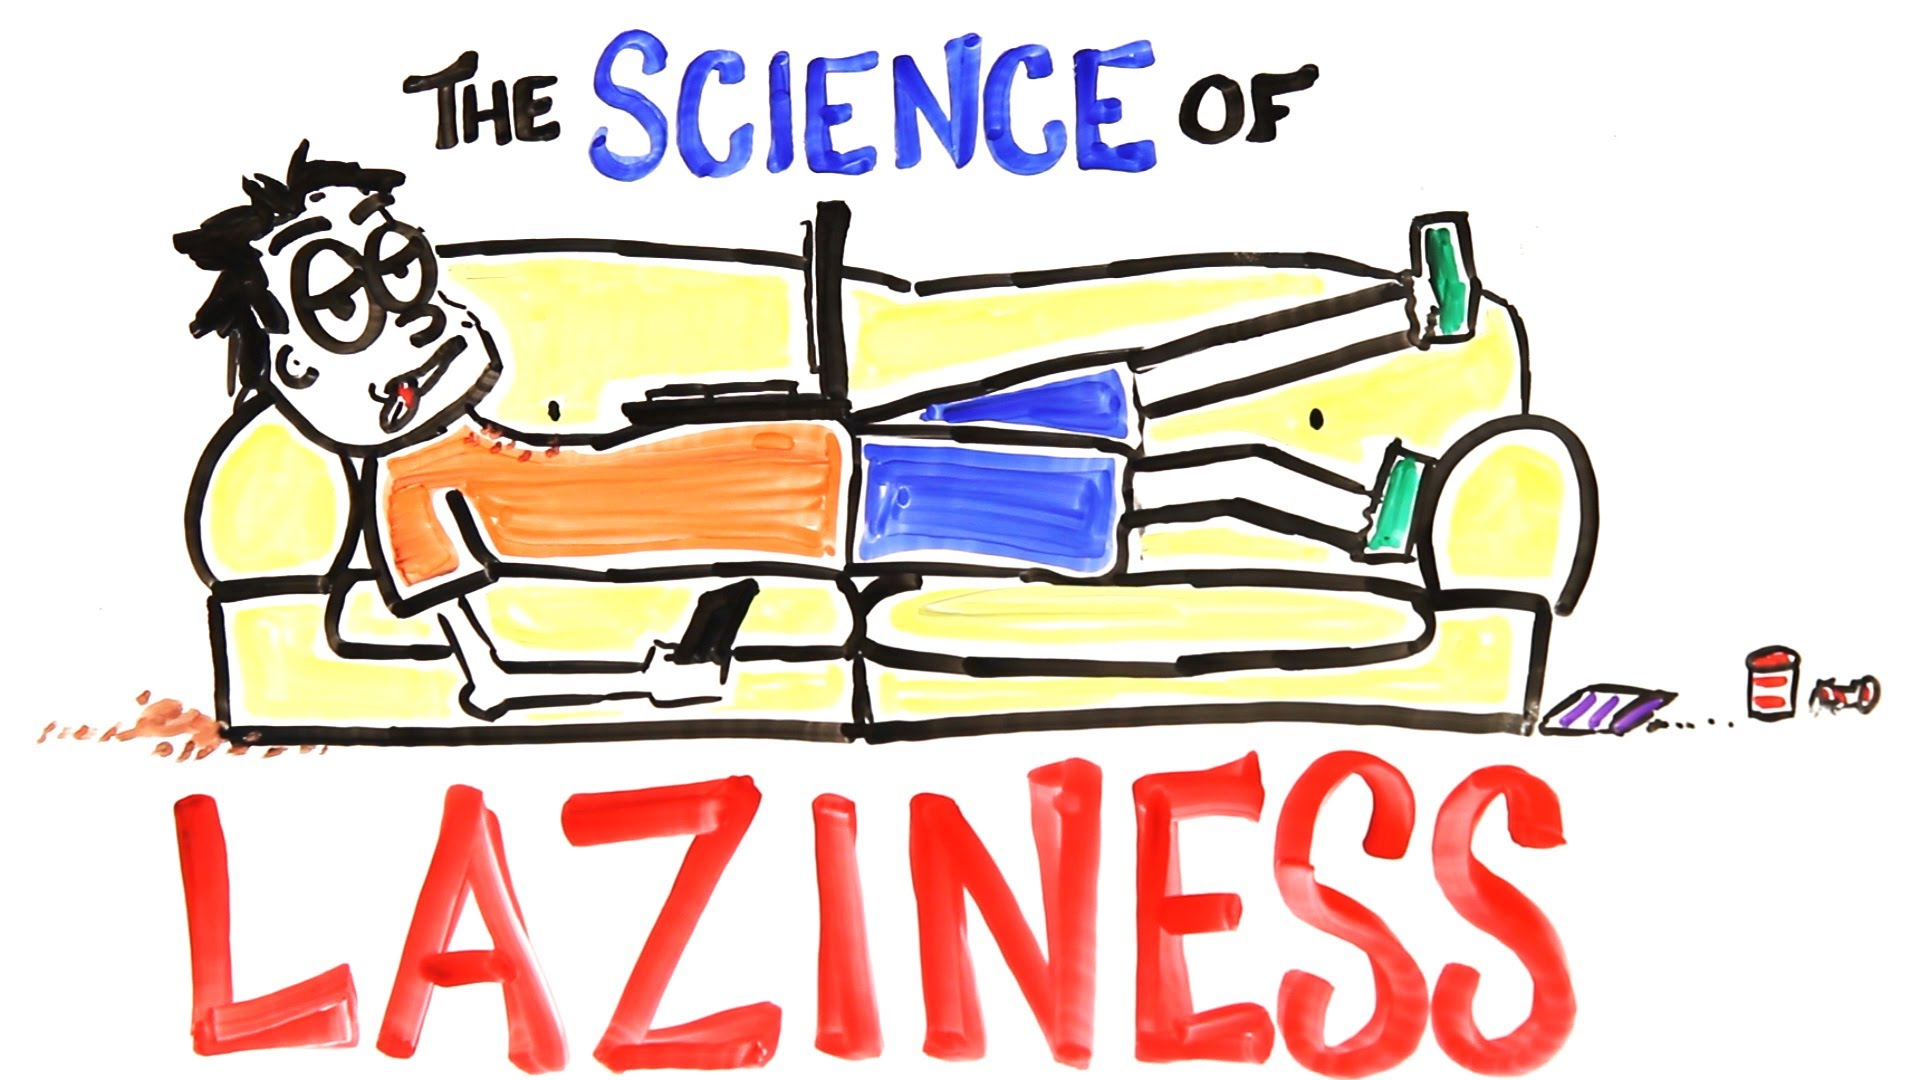 「懶惰的科學」- The Science of Laziness